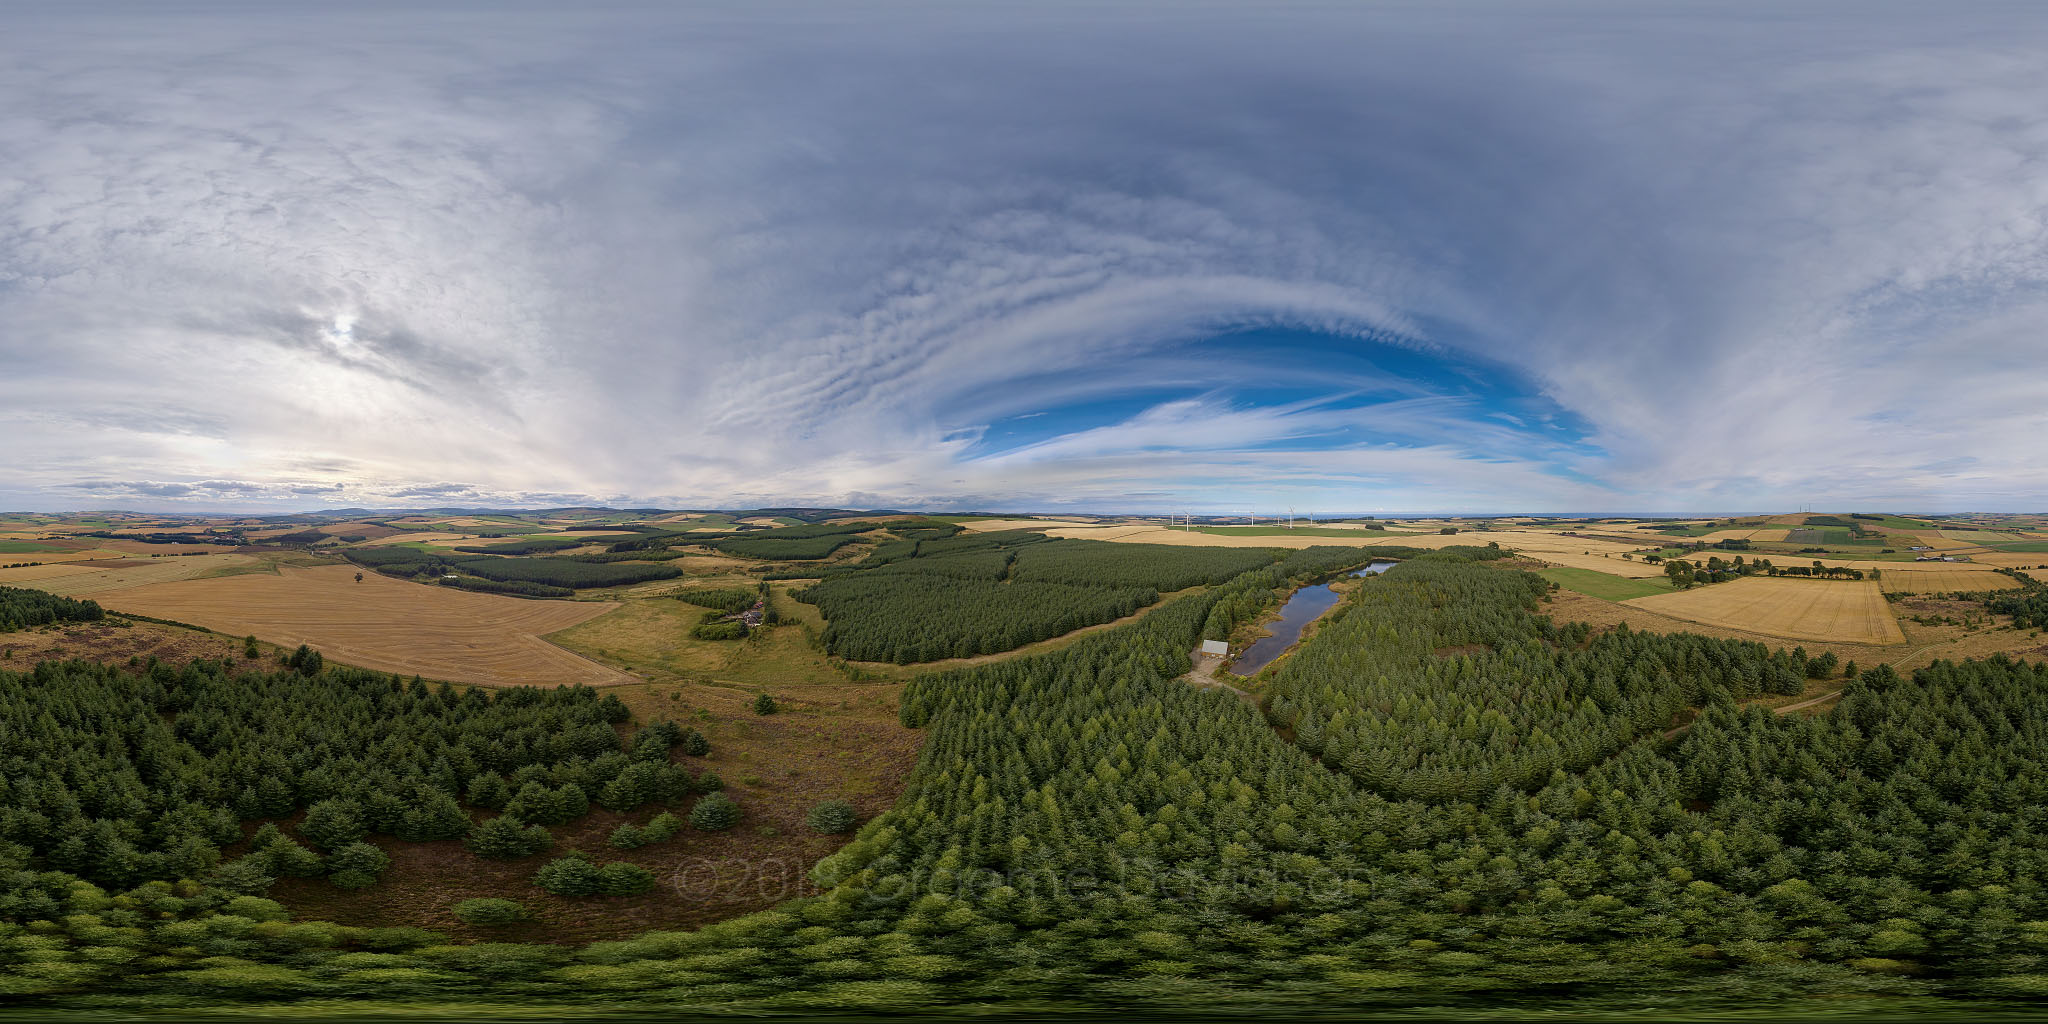 Carmont Hill - Drumlithie - Scotland - Aerial Photosphere 11-08-2018 small.jpg